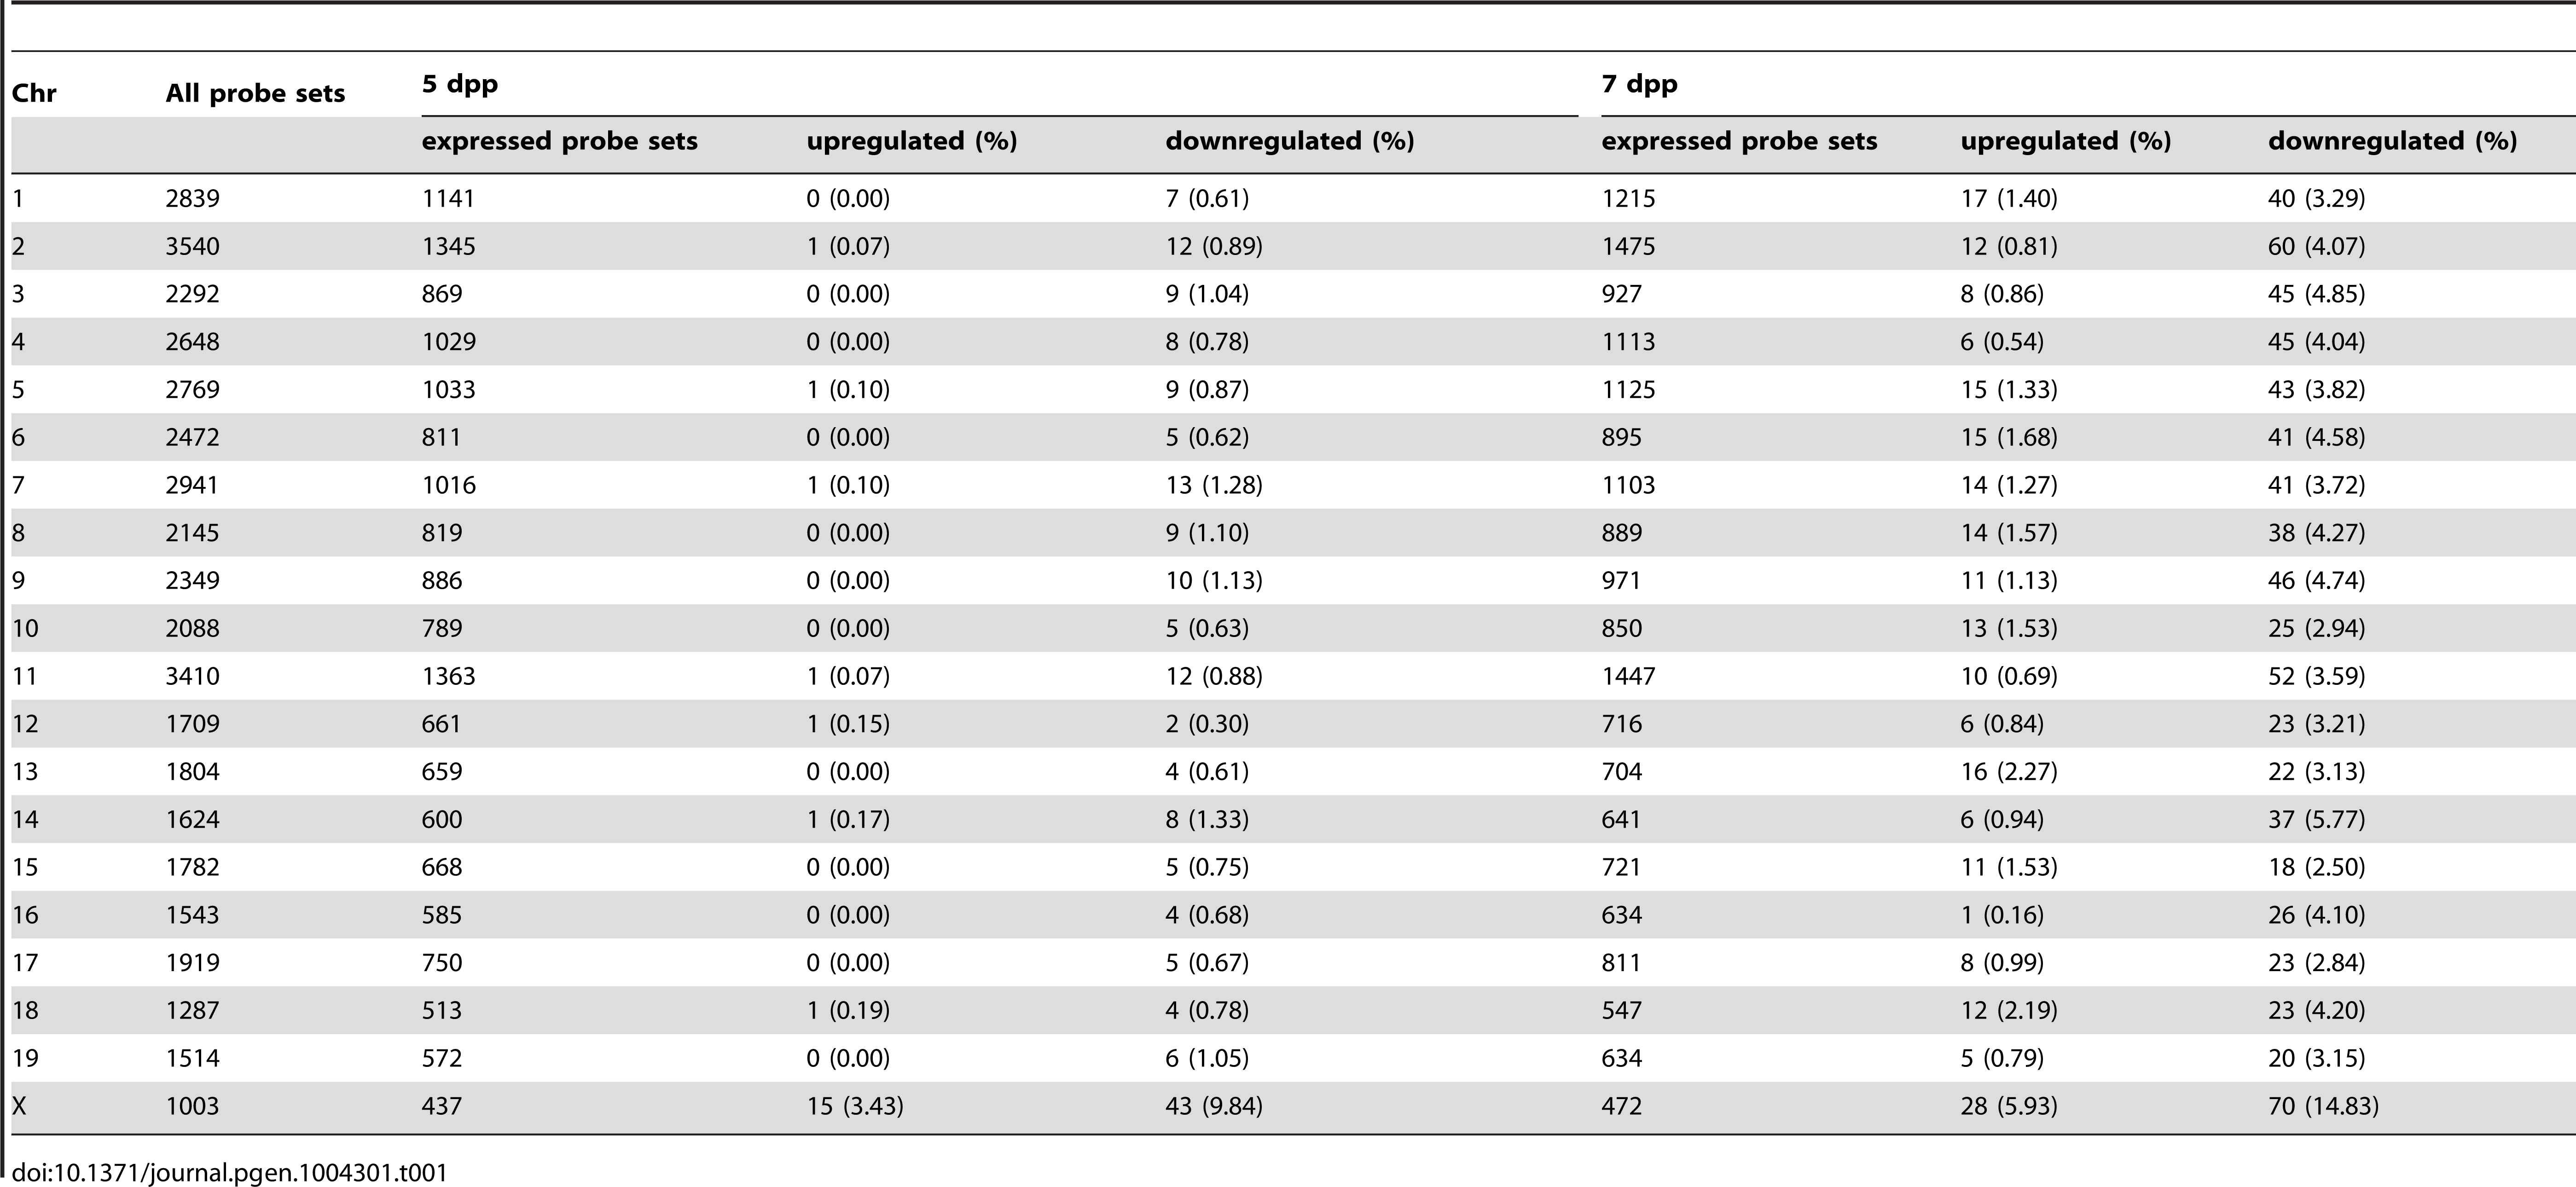 Frequency of downregulated and upregulated transcripts for each chromosome in B6-ChrX<sup>MSM</sup> testes.